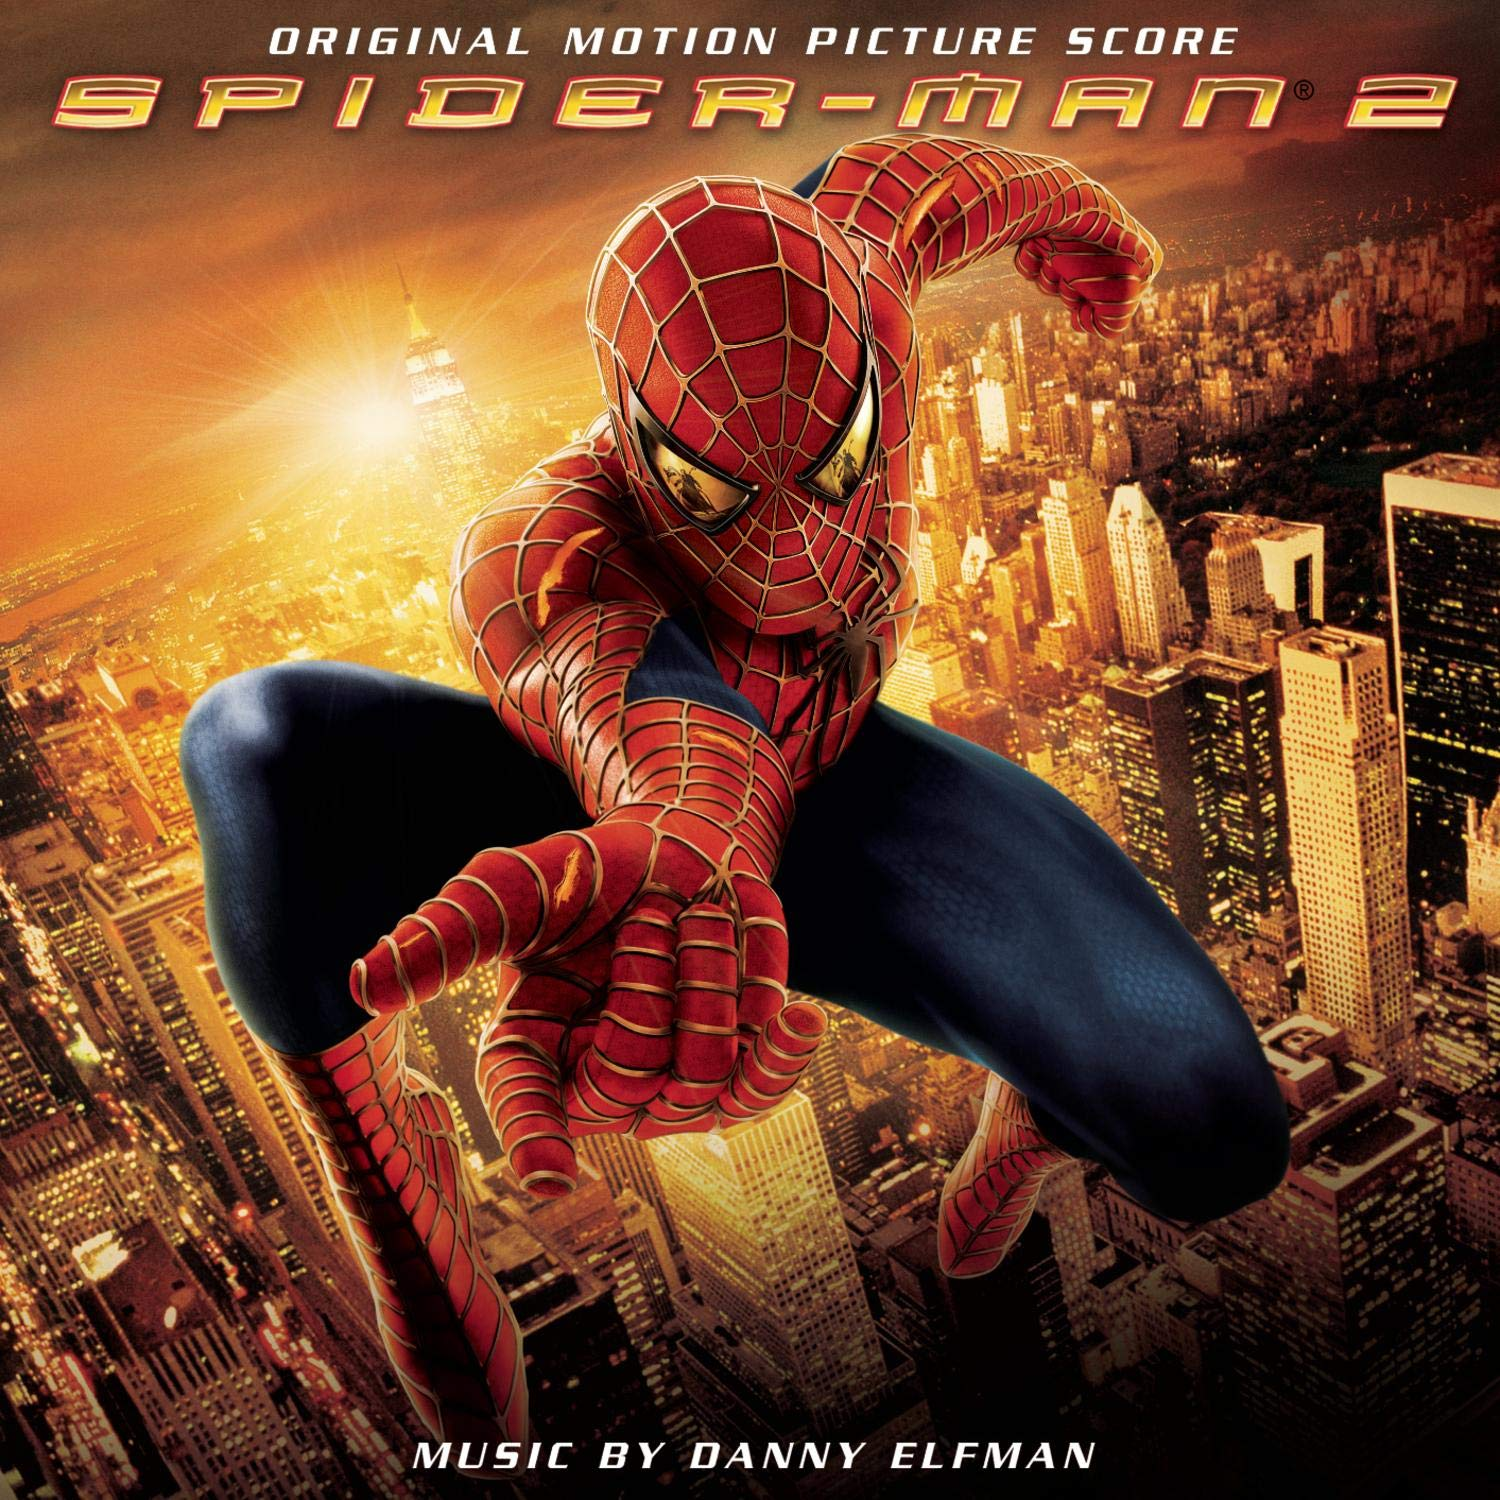 Spider-Man 2 Music by Danny Elfman